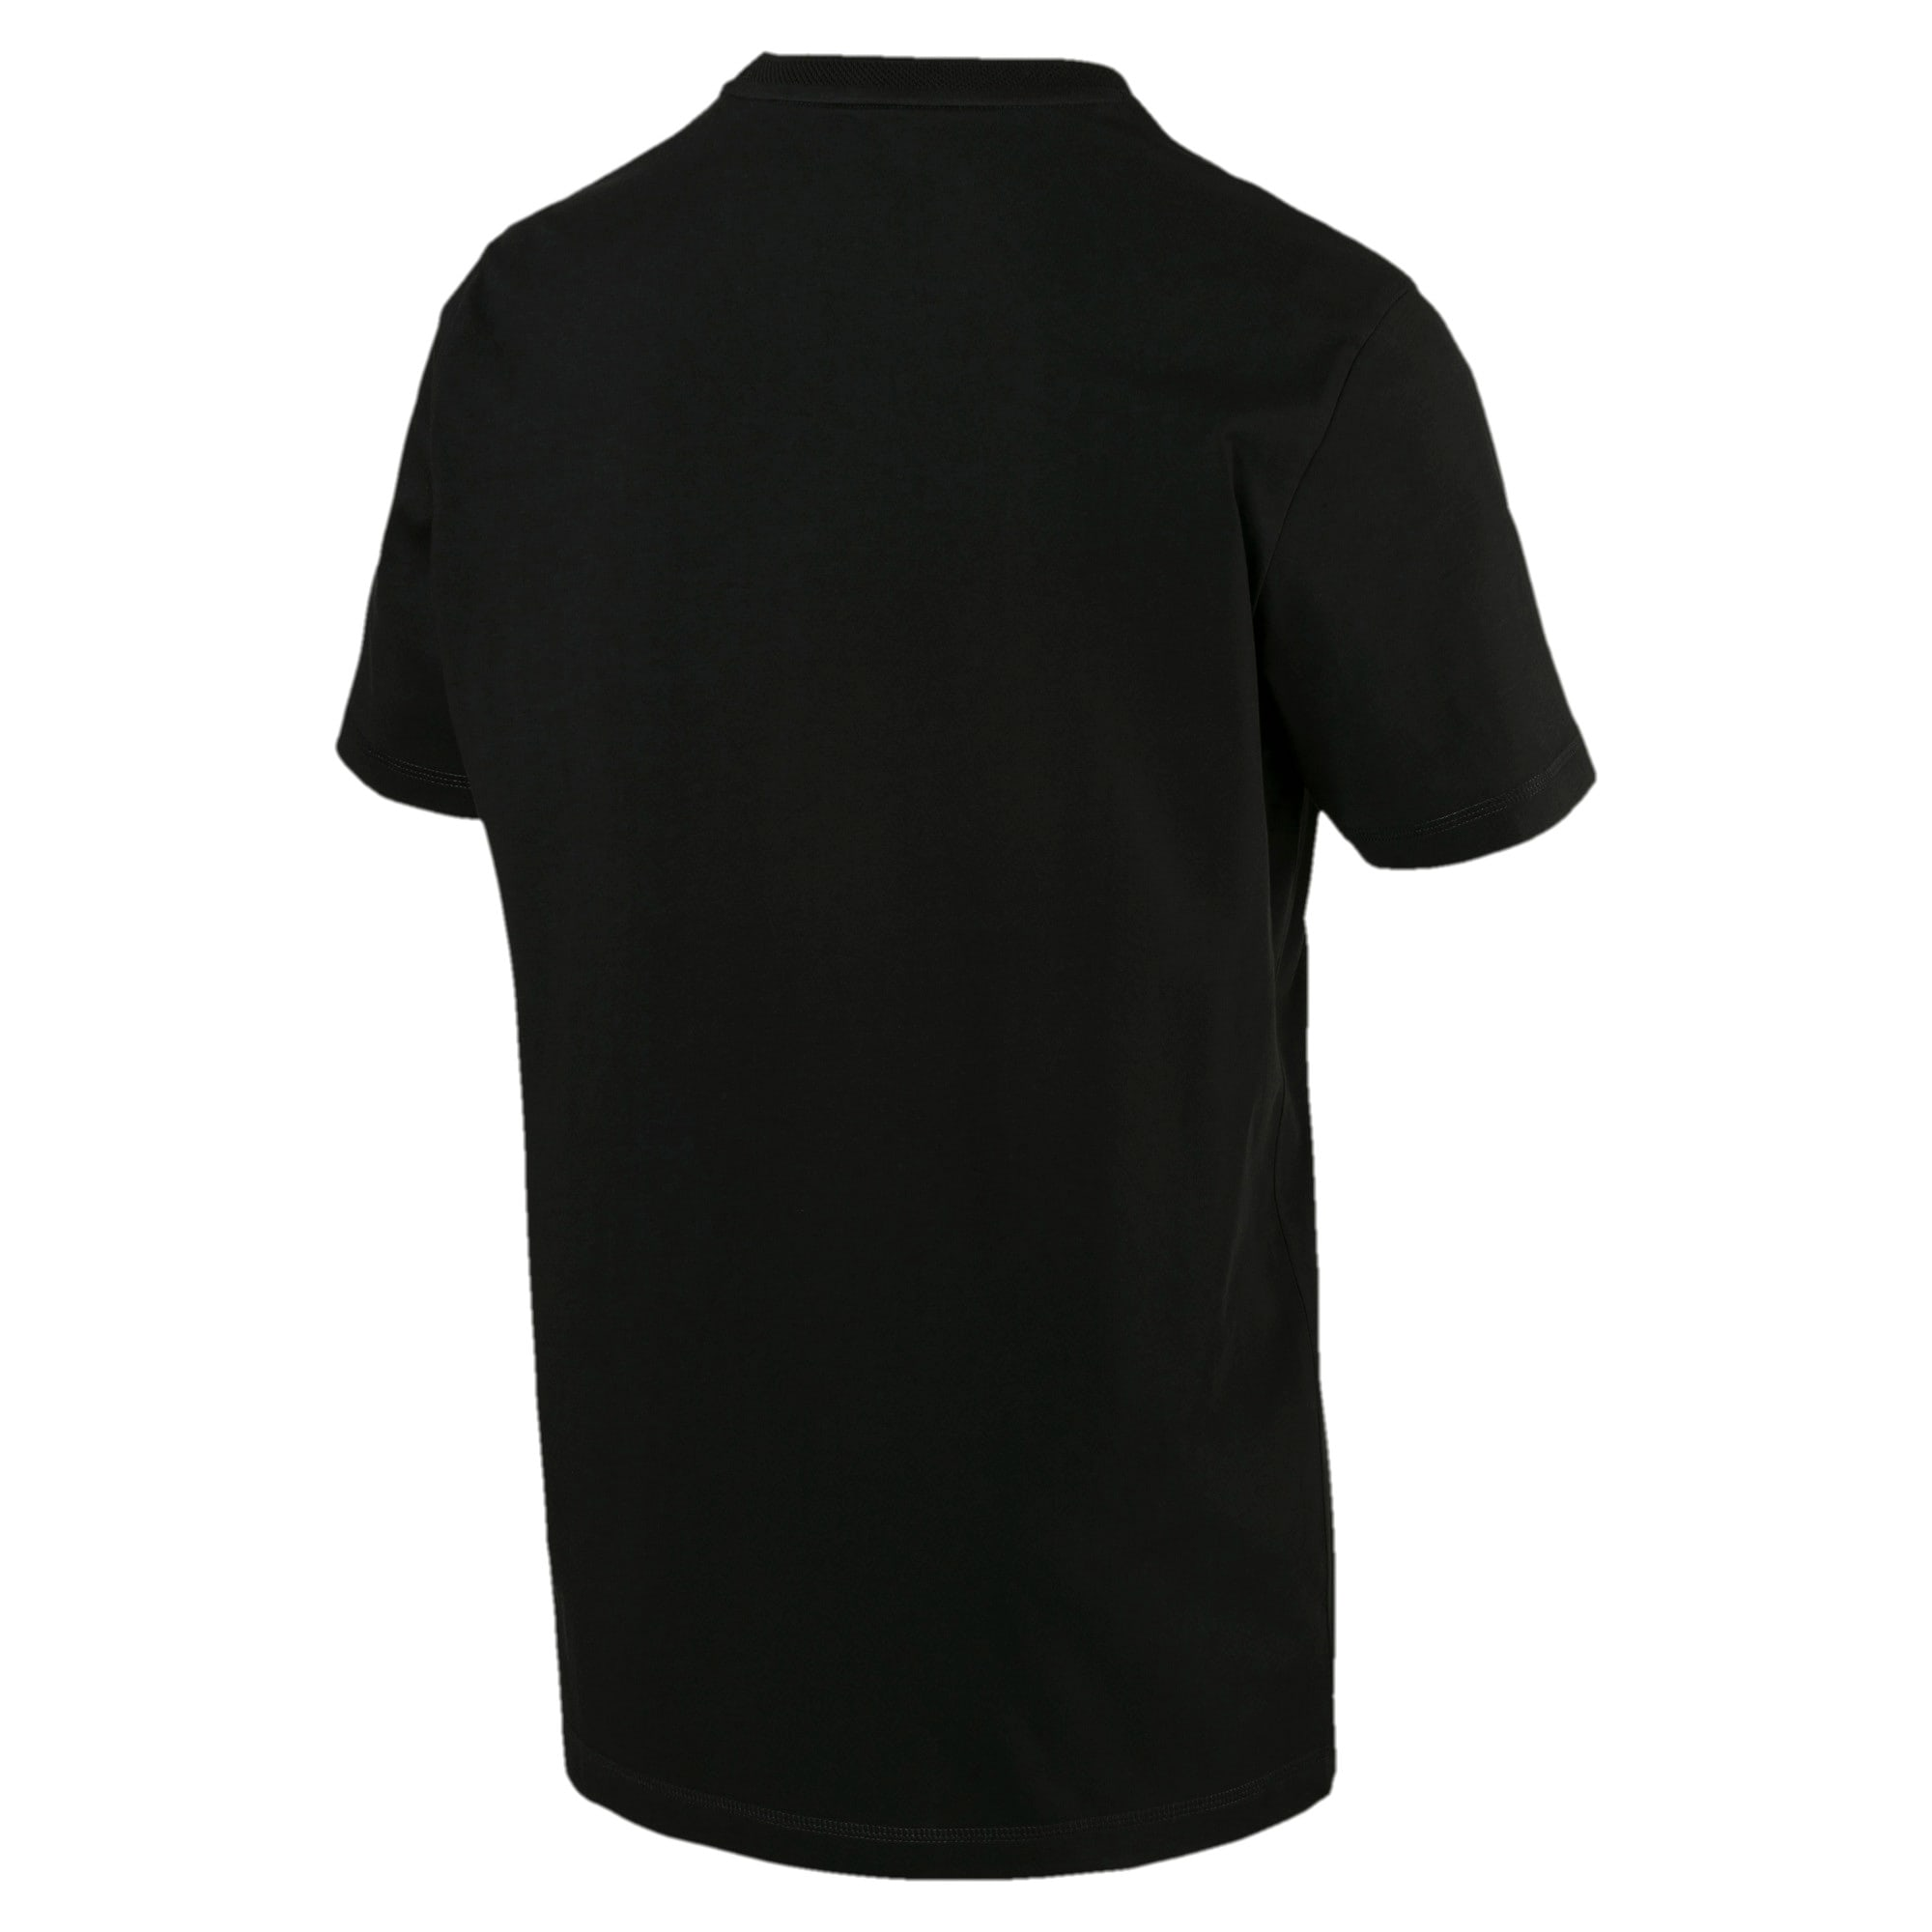 Thumbnail 2 of Fusion Short Sleeve Men's Tee, Cotton Black, medium